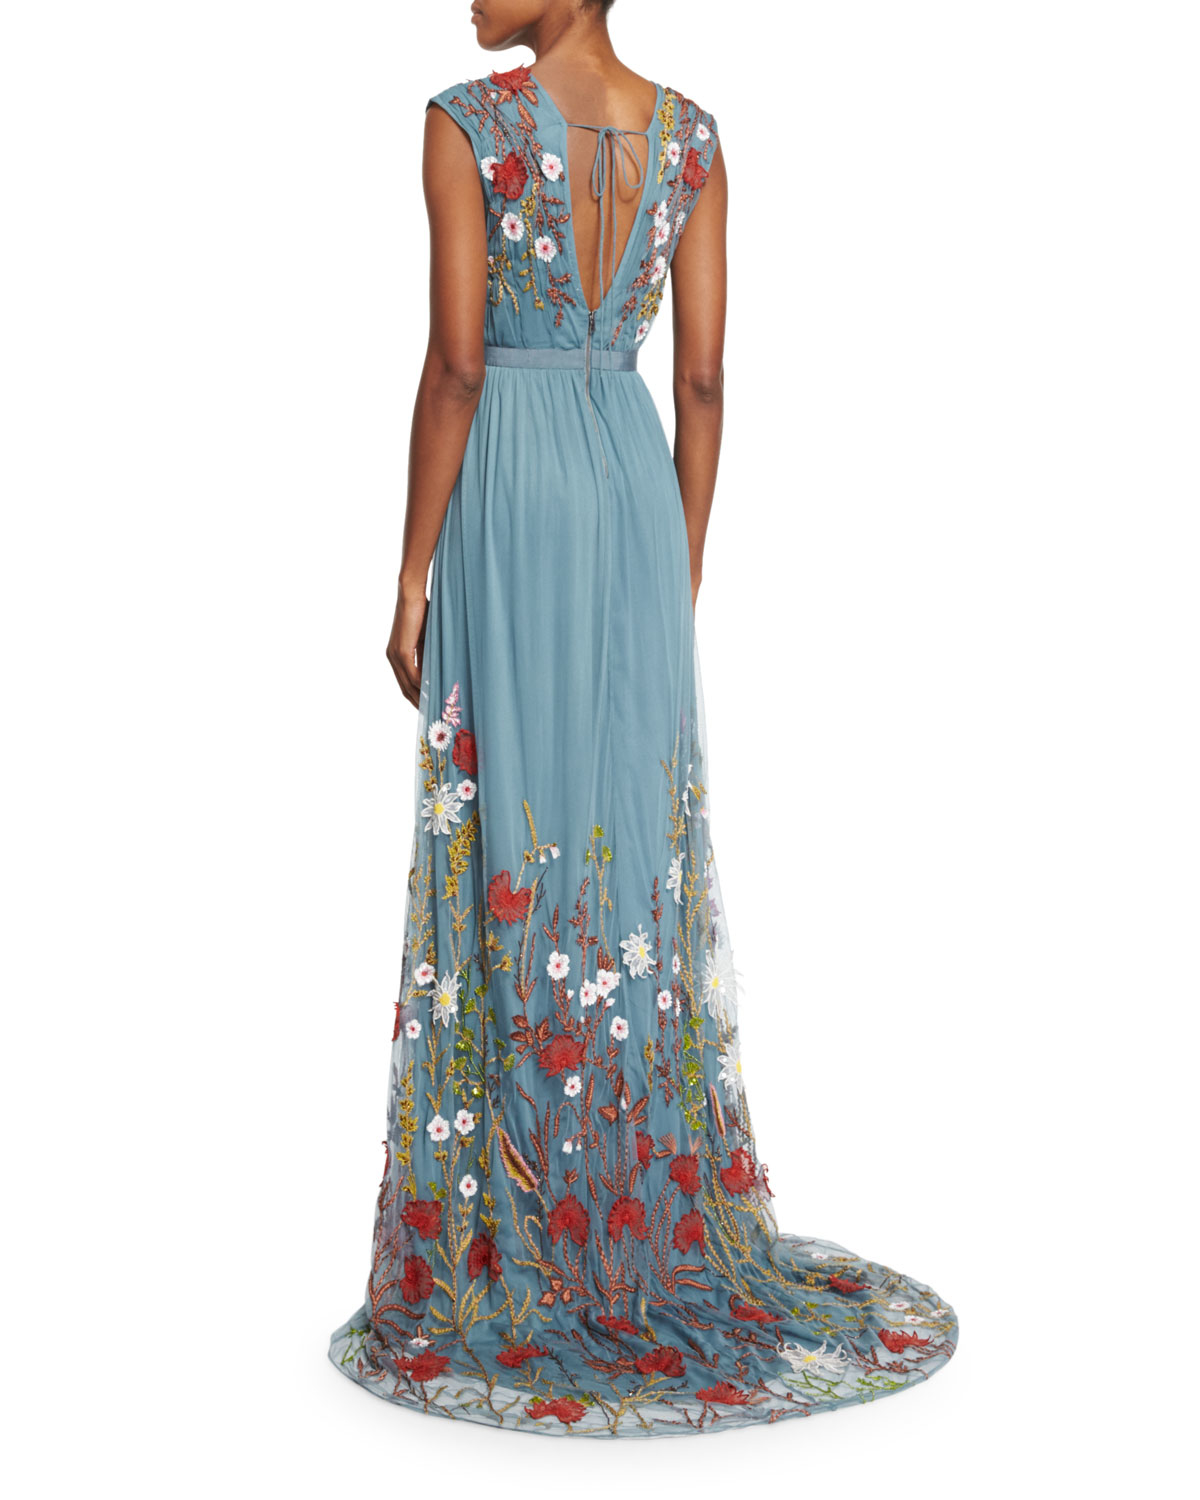 lyst alice olivia merrill floral embroidered sleeveless maxi dress in blue. Black Bedroom Furniture Sets. Home Design Ideas